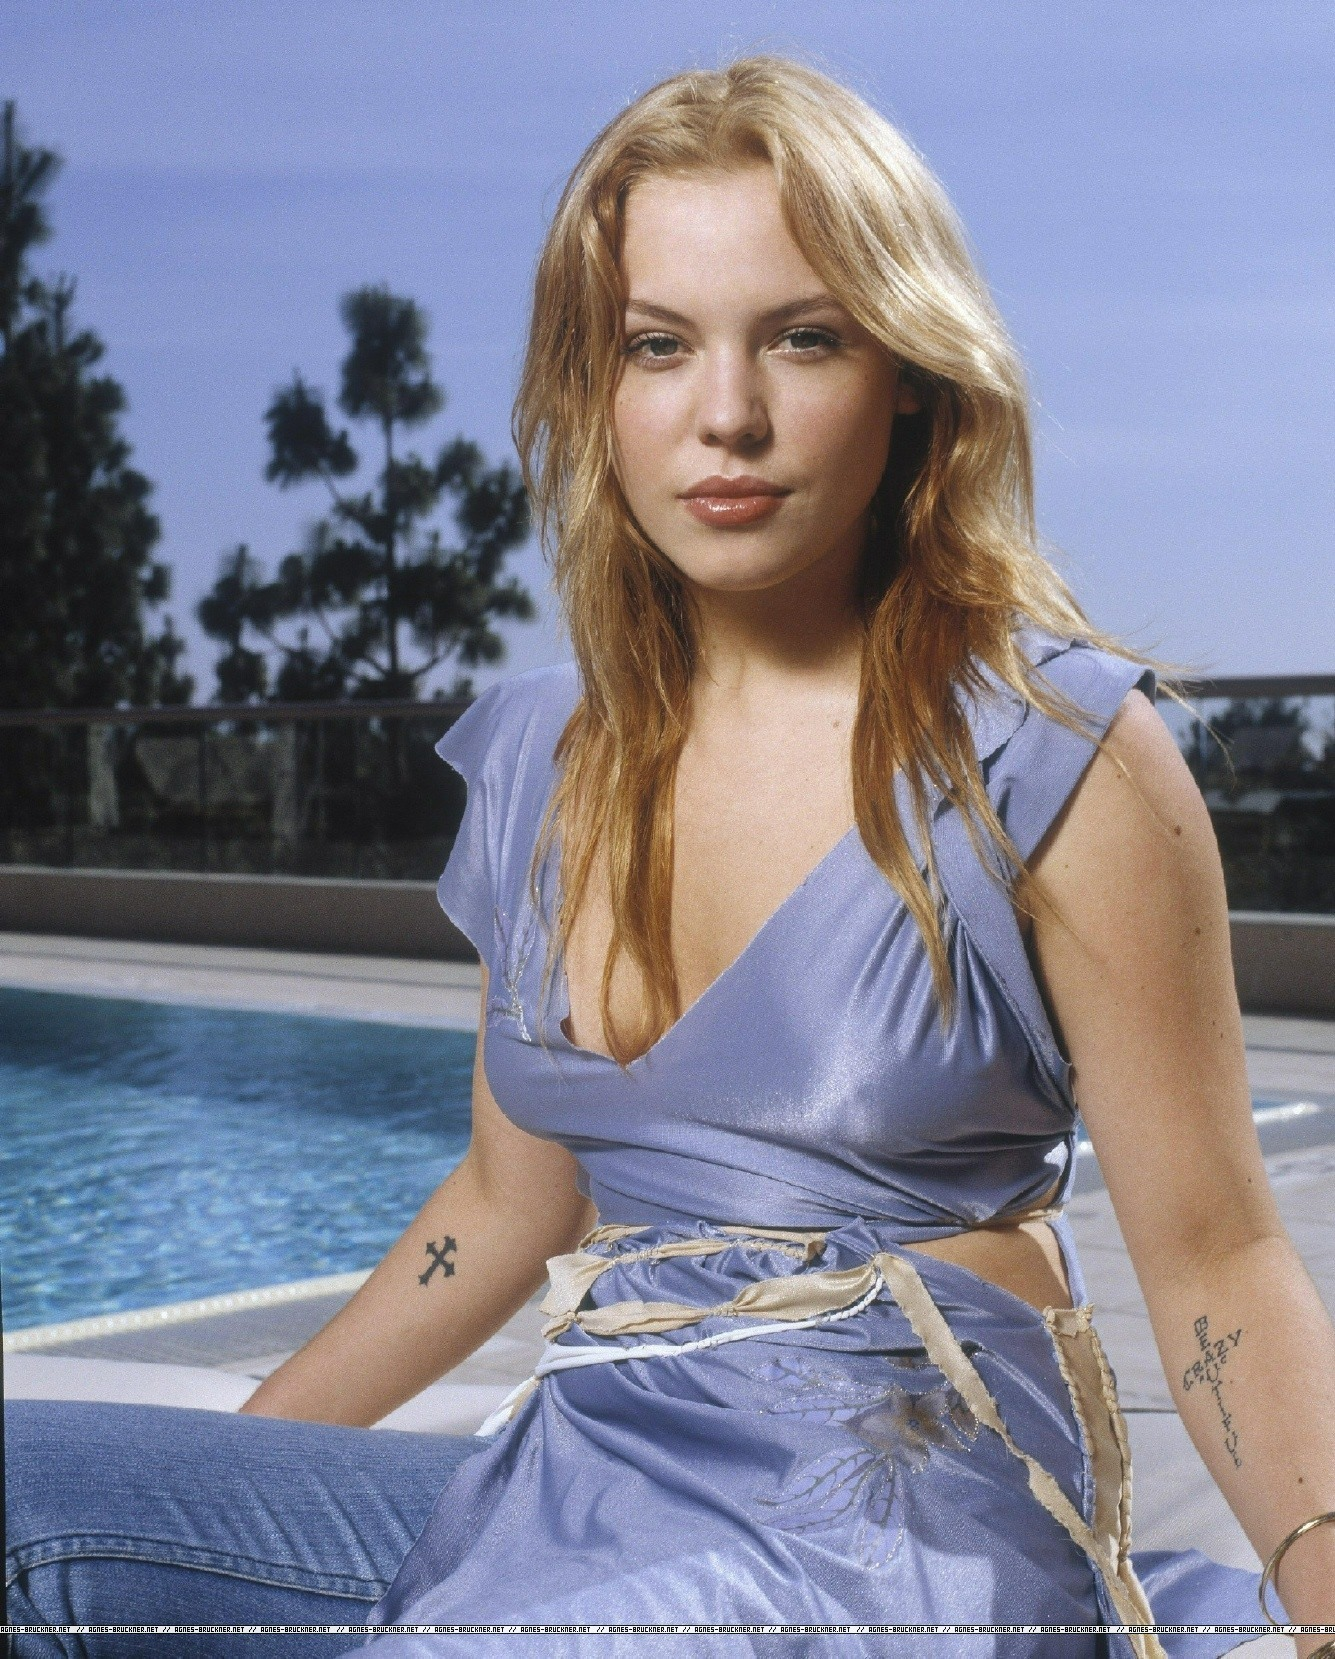 agnes bruckner seductive hot - photo #20